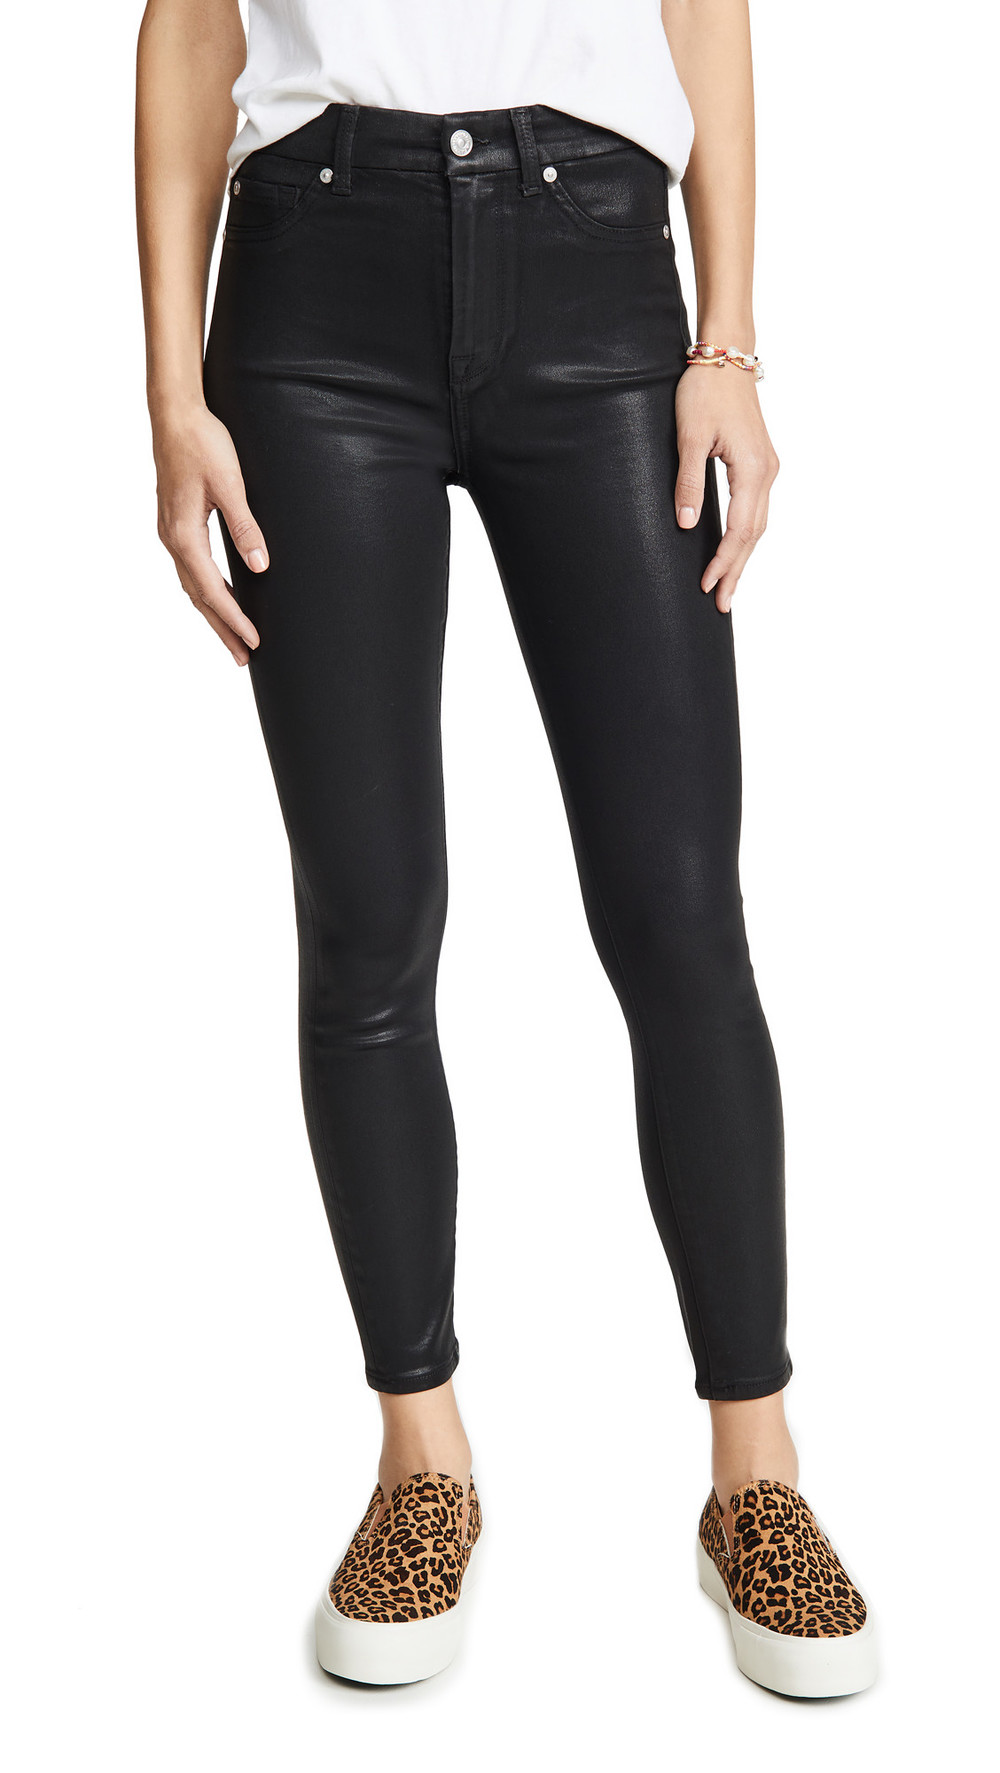 7 For All Mankind High Waisted Skinny Jeans With Faux Pockets in black